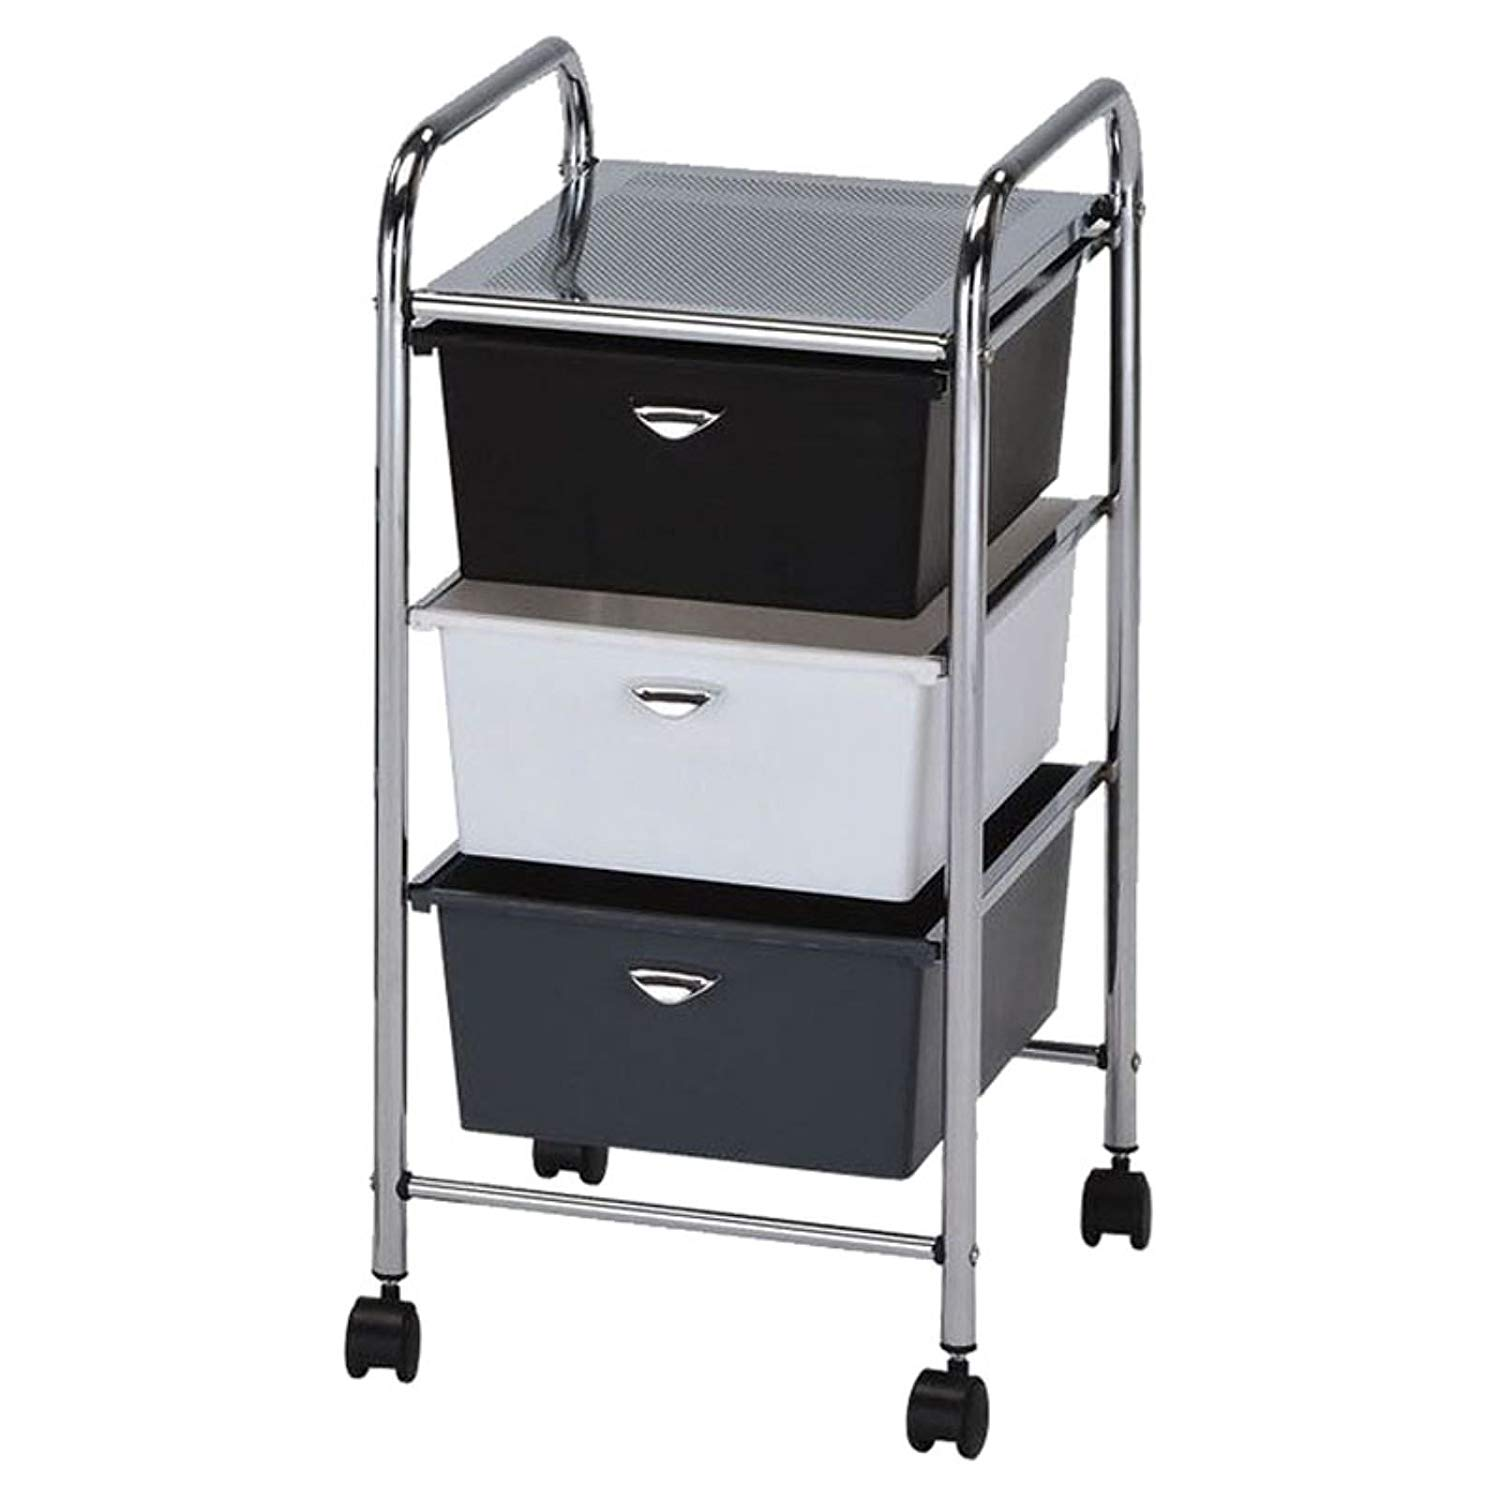 Rolling Drawer Bin Storage Organizer Utility Cart with 3 Tier Multi Color Drawer Organizer for School, Home, Office, Multi-Purpose Storage Solution